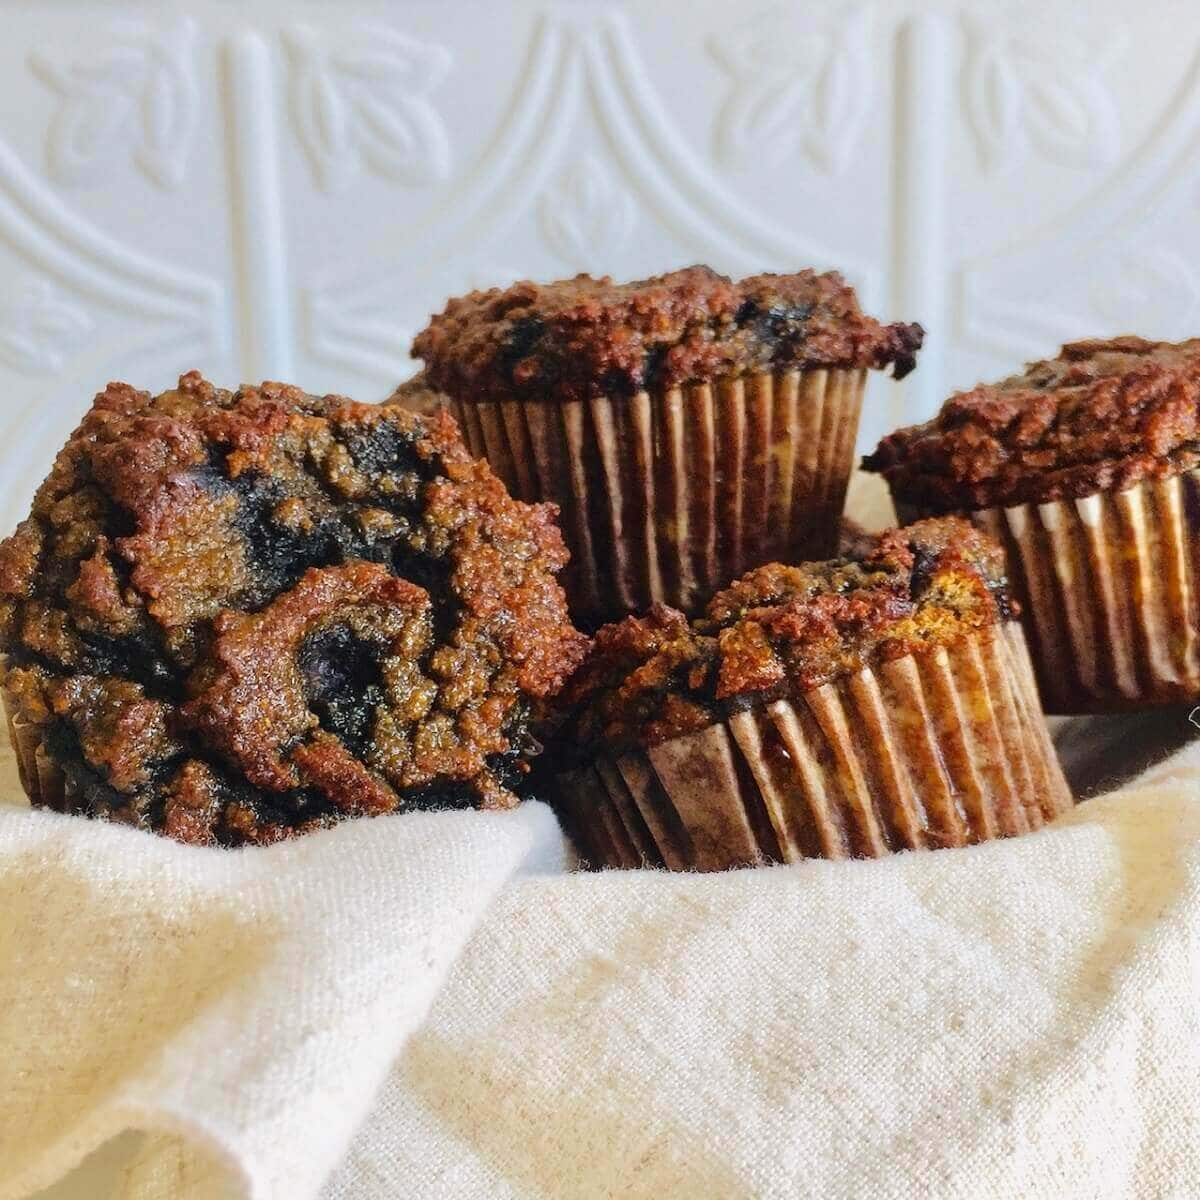 Healthy Blueberry Muffins in a light colored towel.